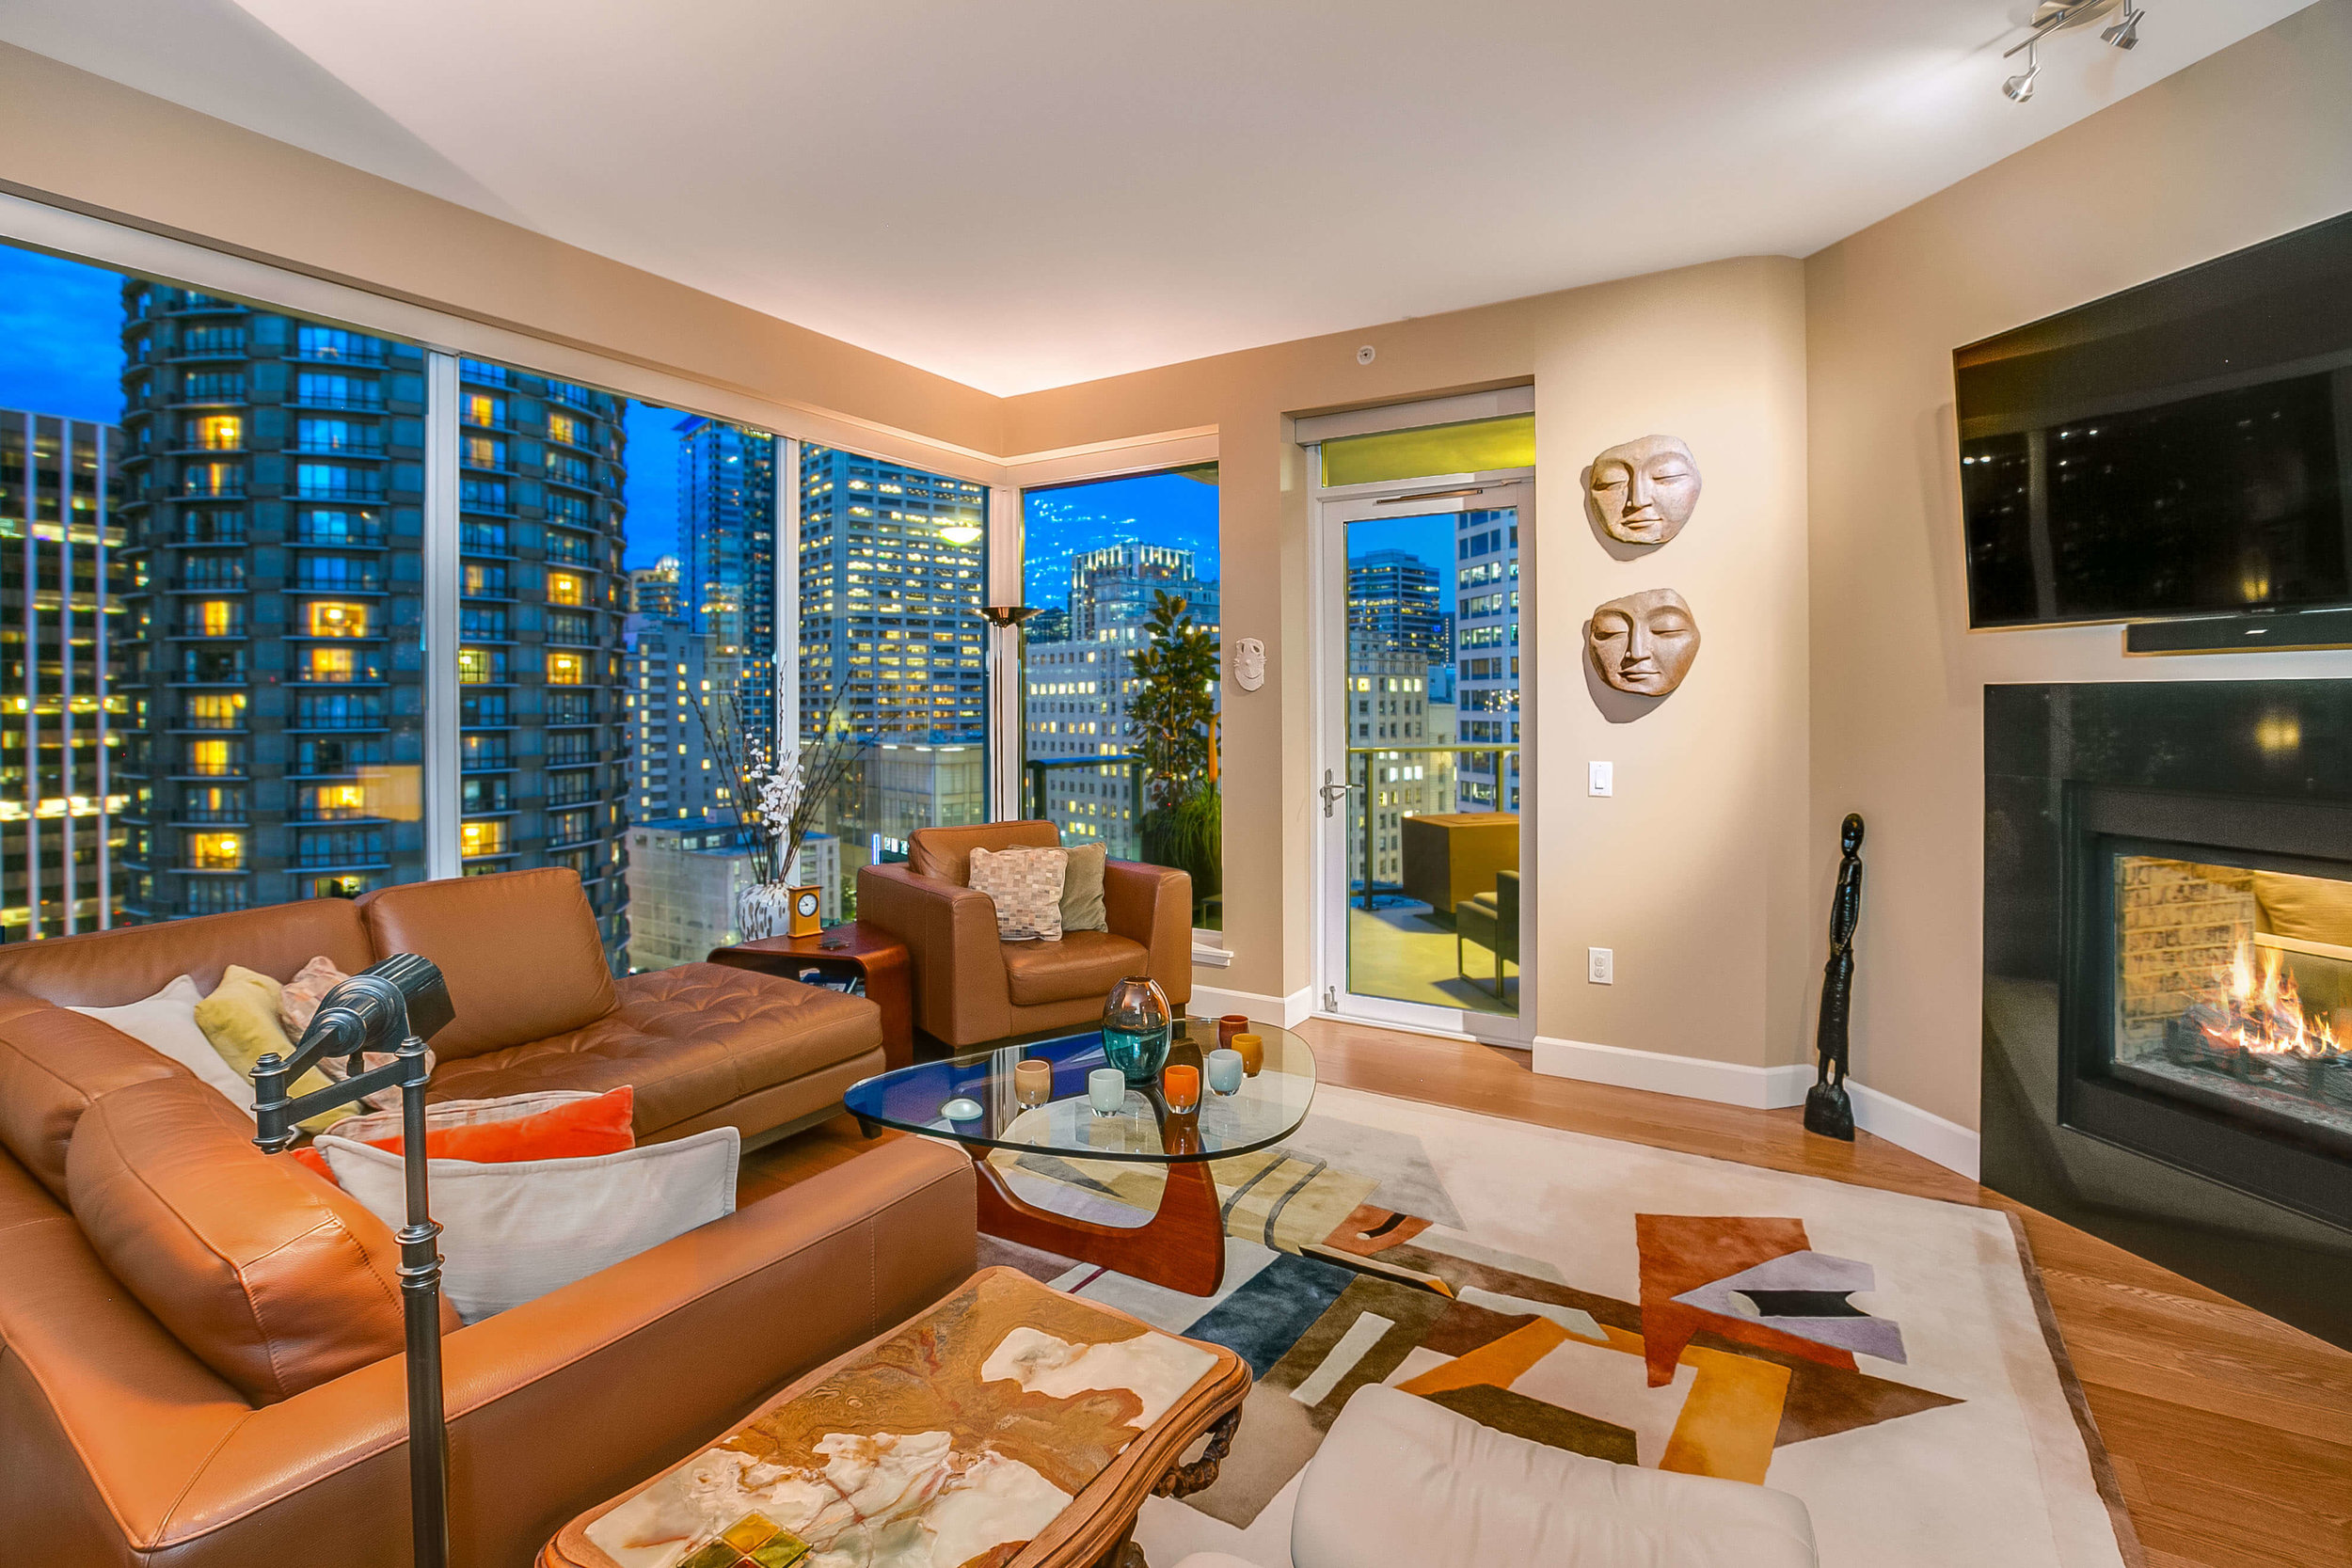 ESCALA # 1208 - 2 Bedrooms, 2 Bathrooms, 1,607 Square Feet2 Parking SpacesOffered at $1,225,000